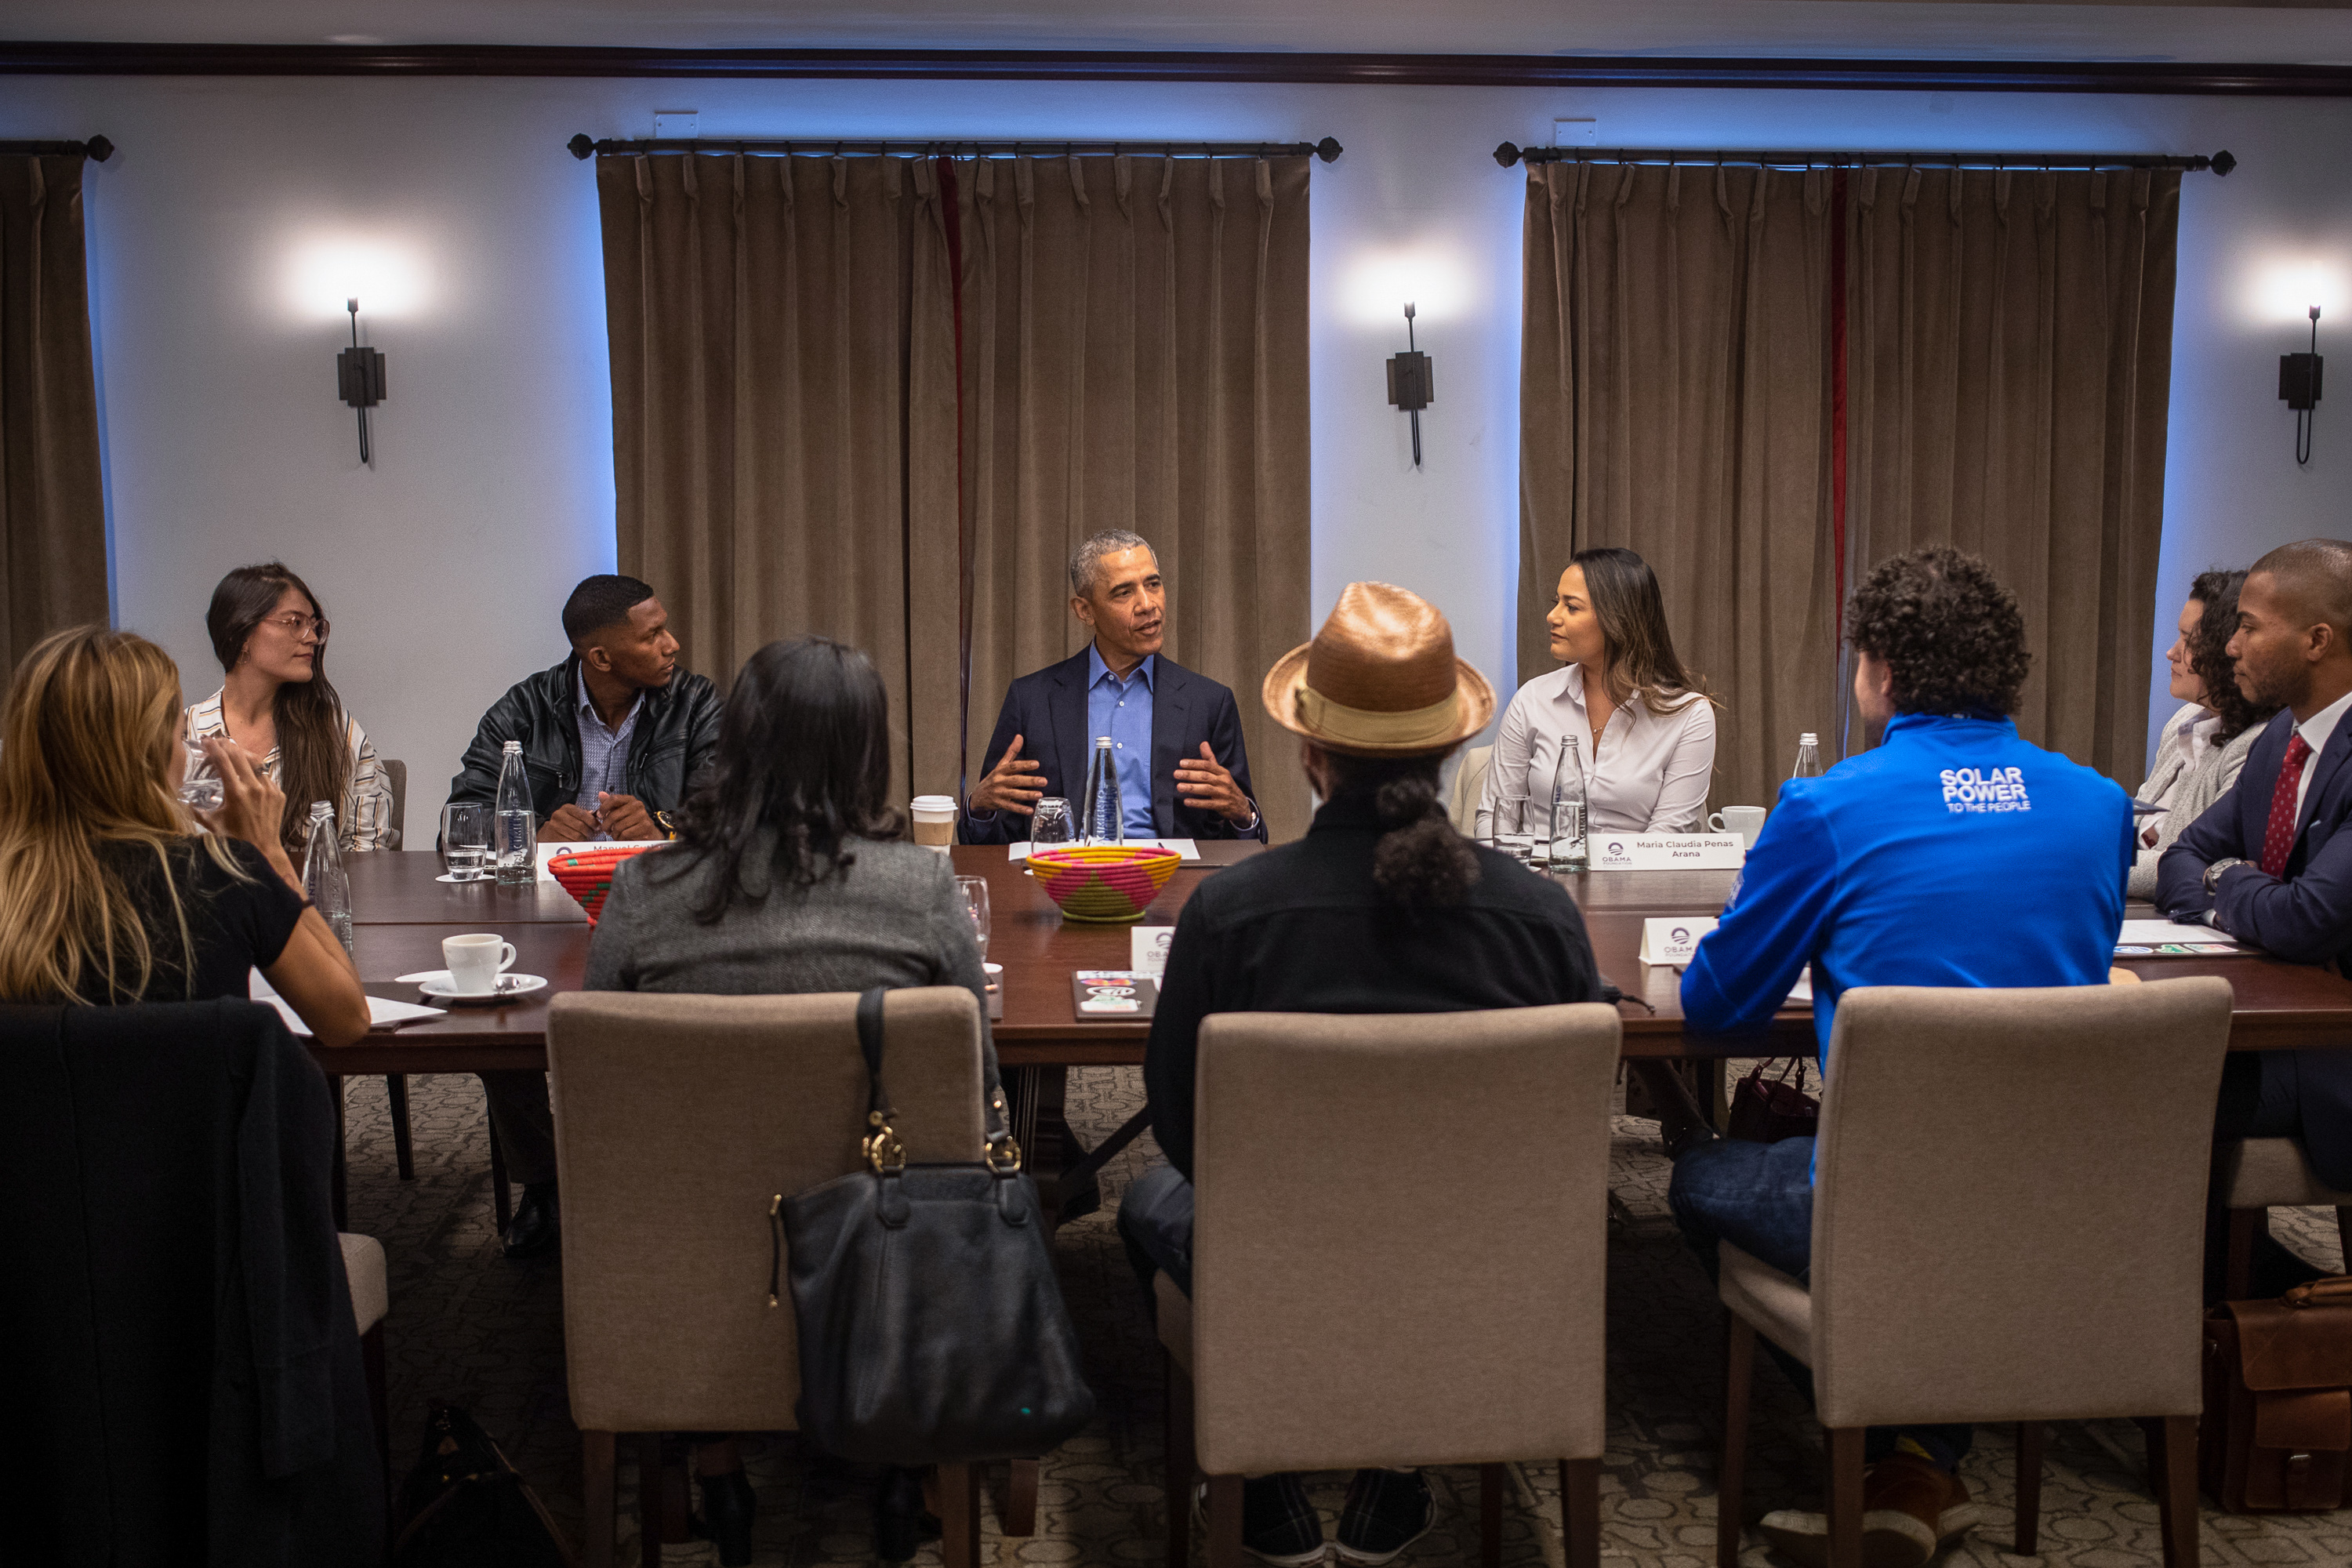 Meet the 11 Emerging Leaders who Joined President Obama for a Conversation in Bogotá